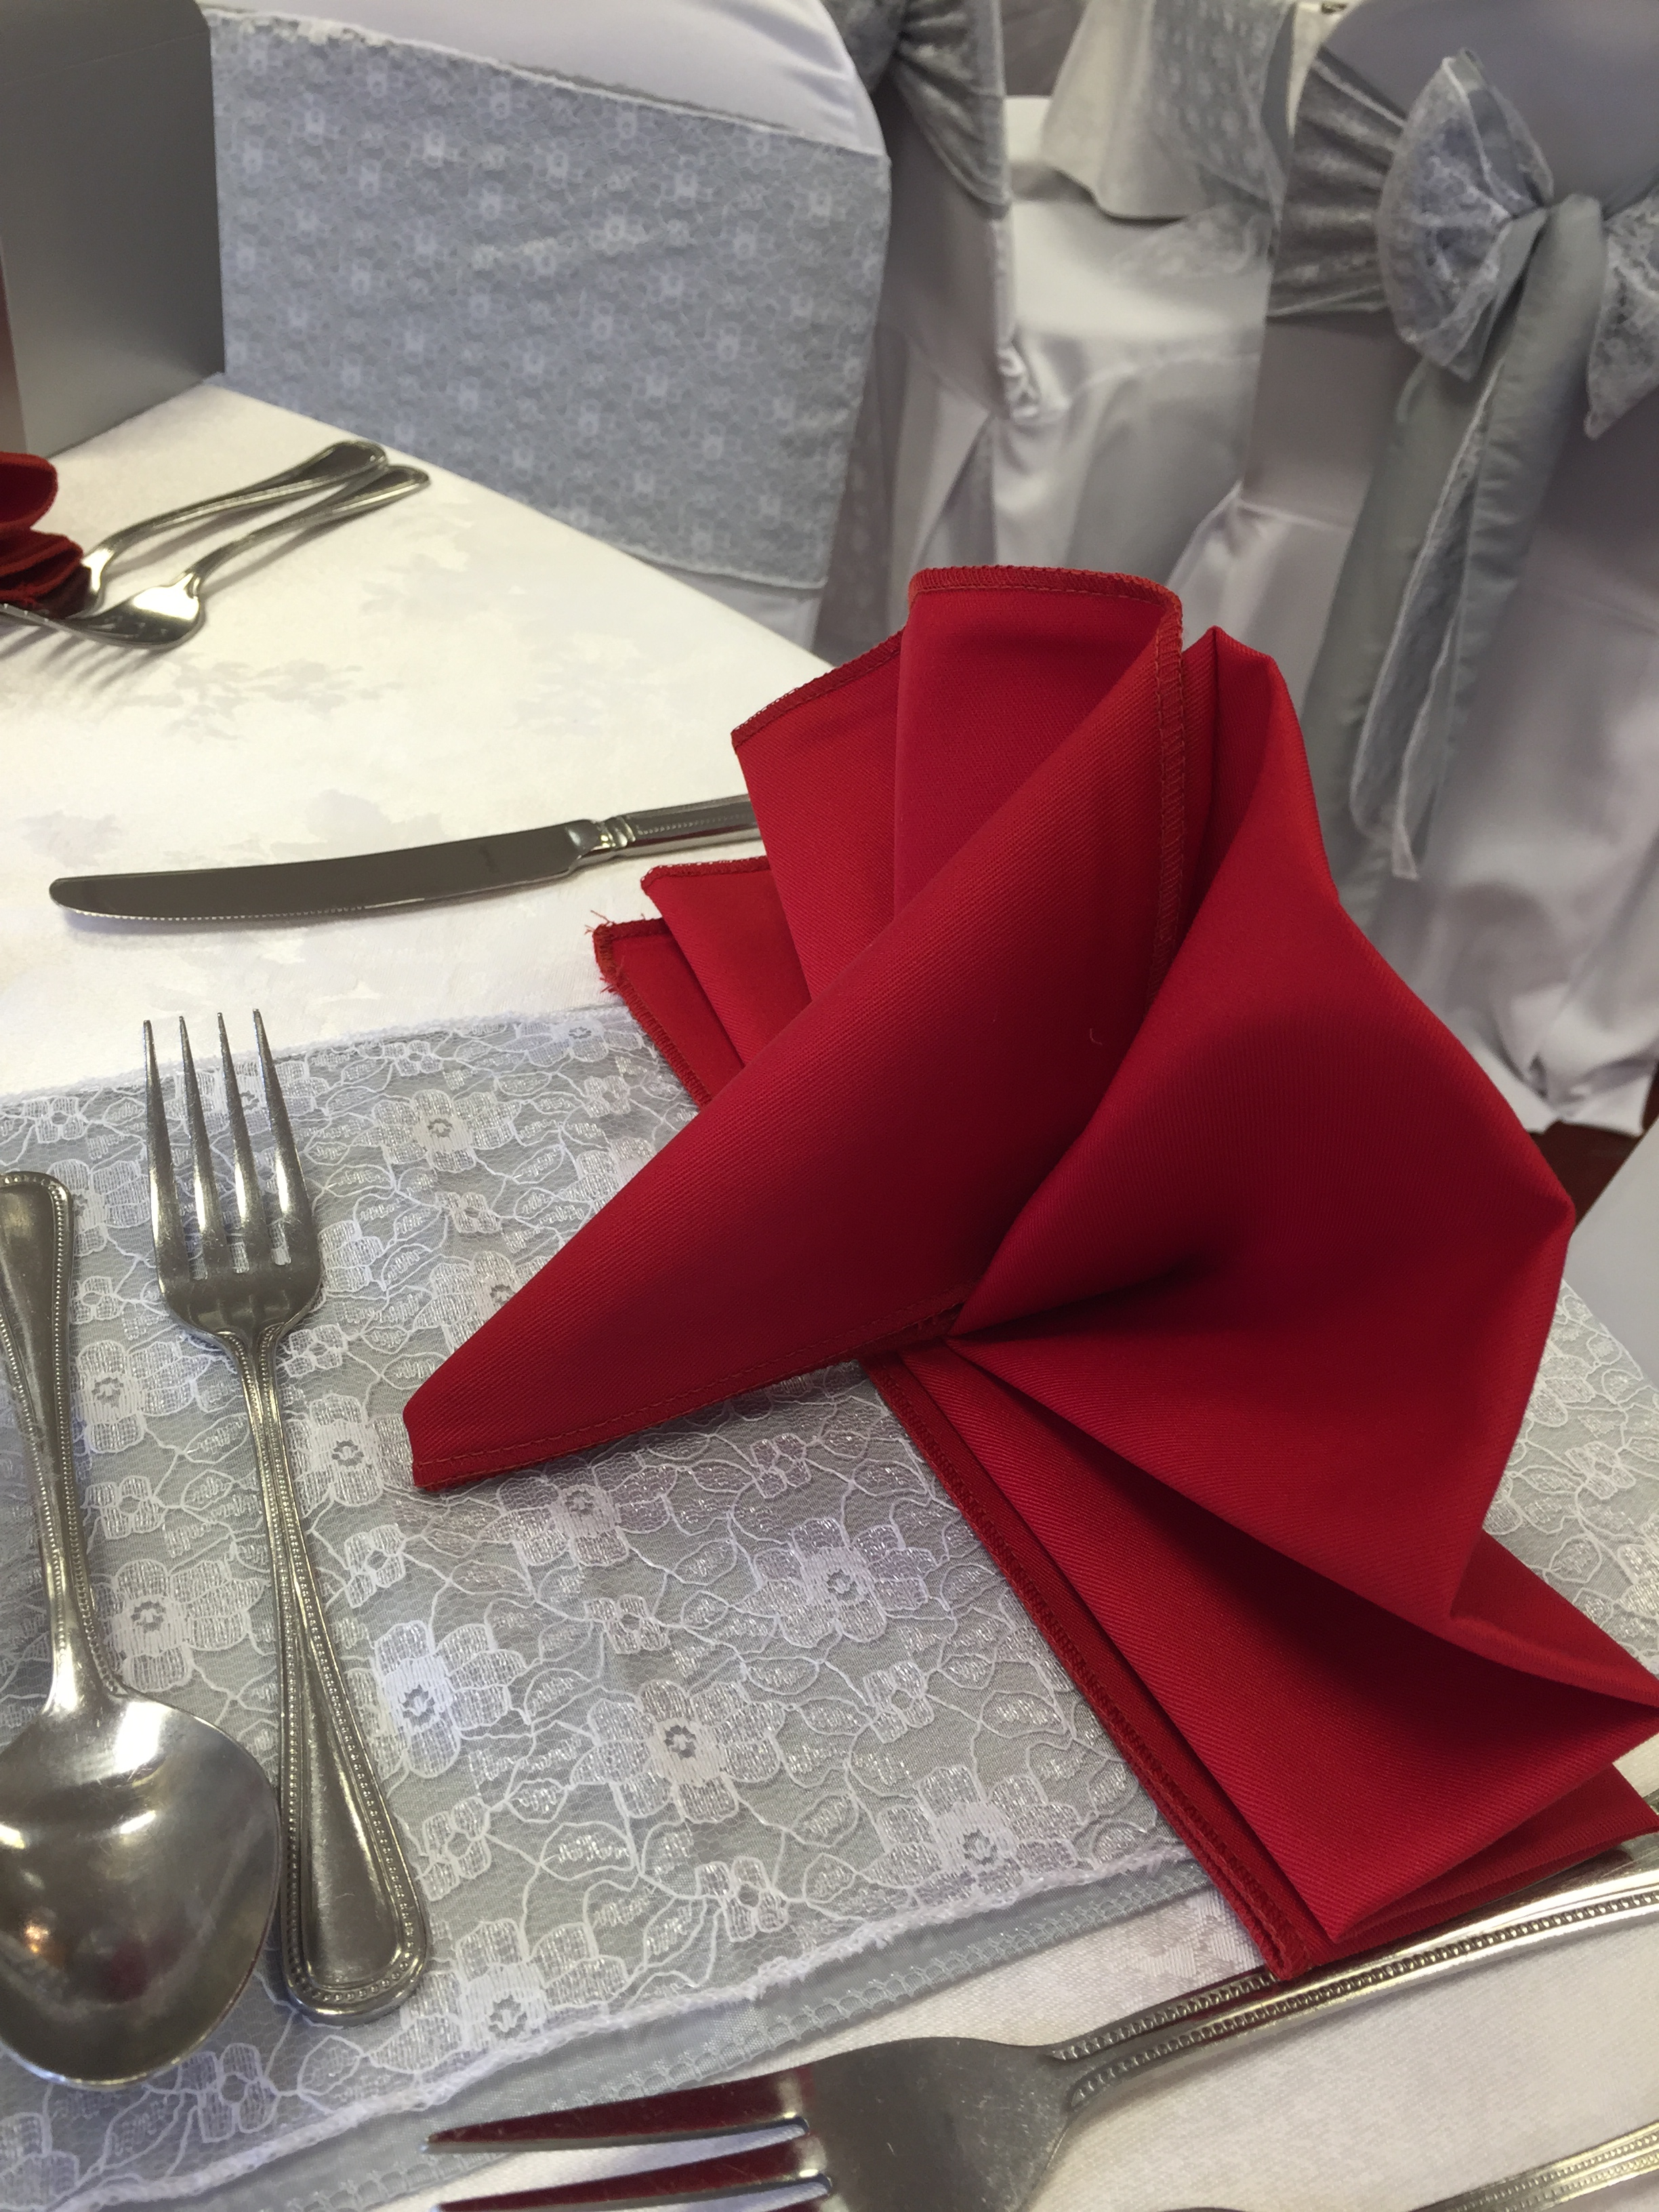 Fan style folded red linen napkin